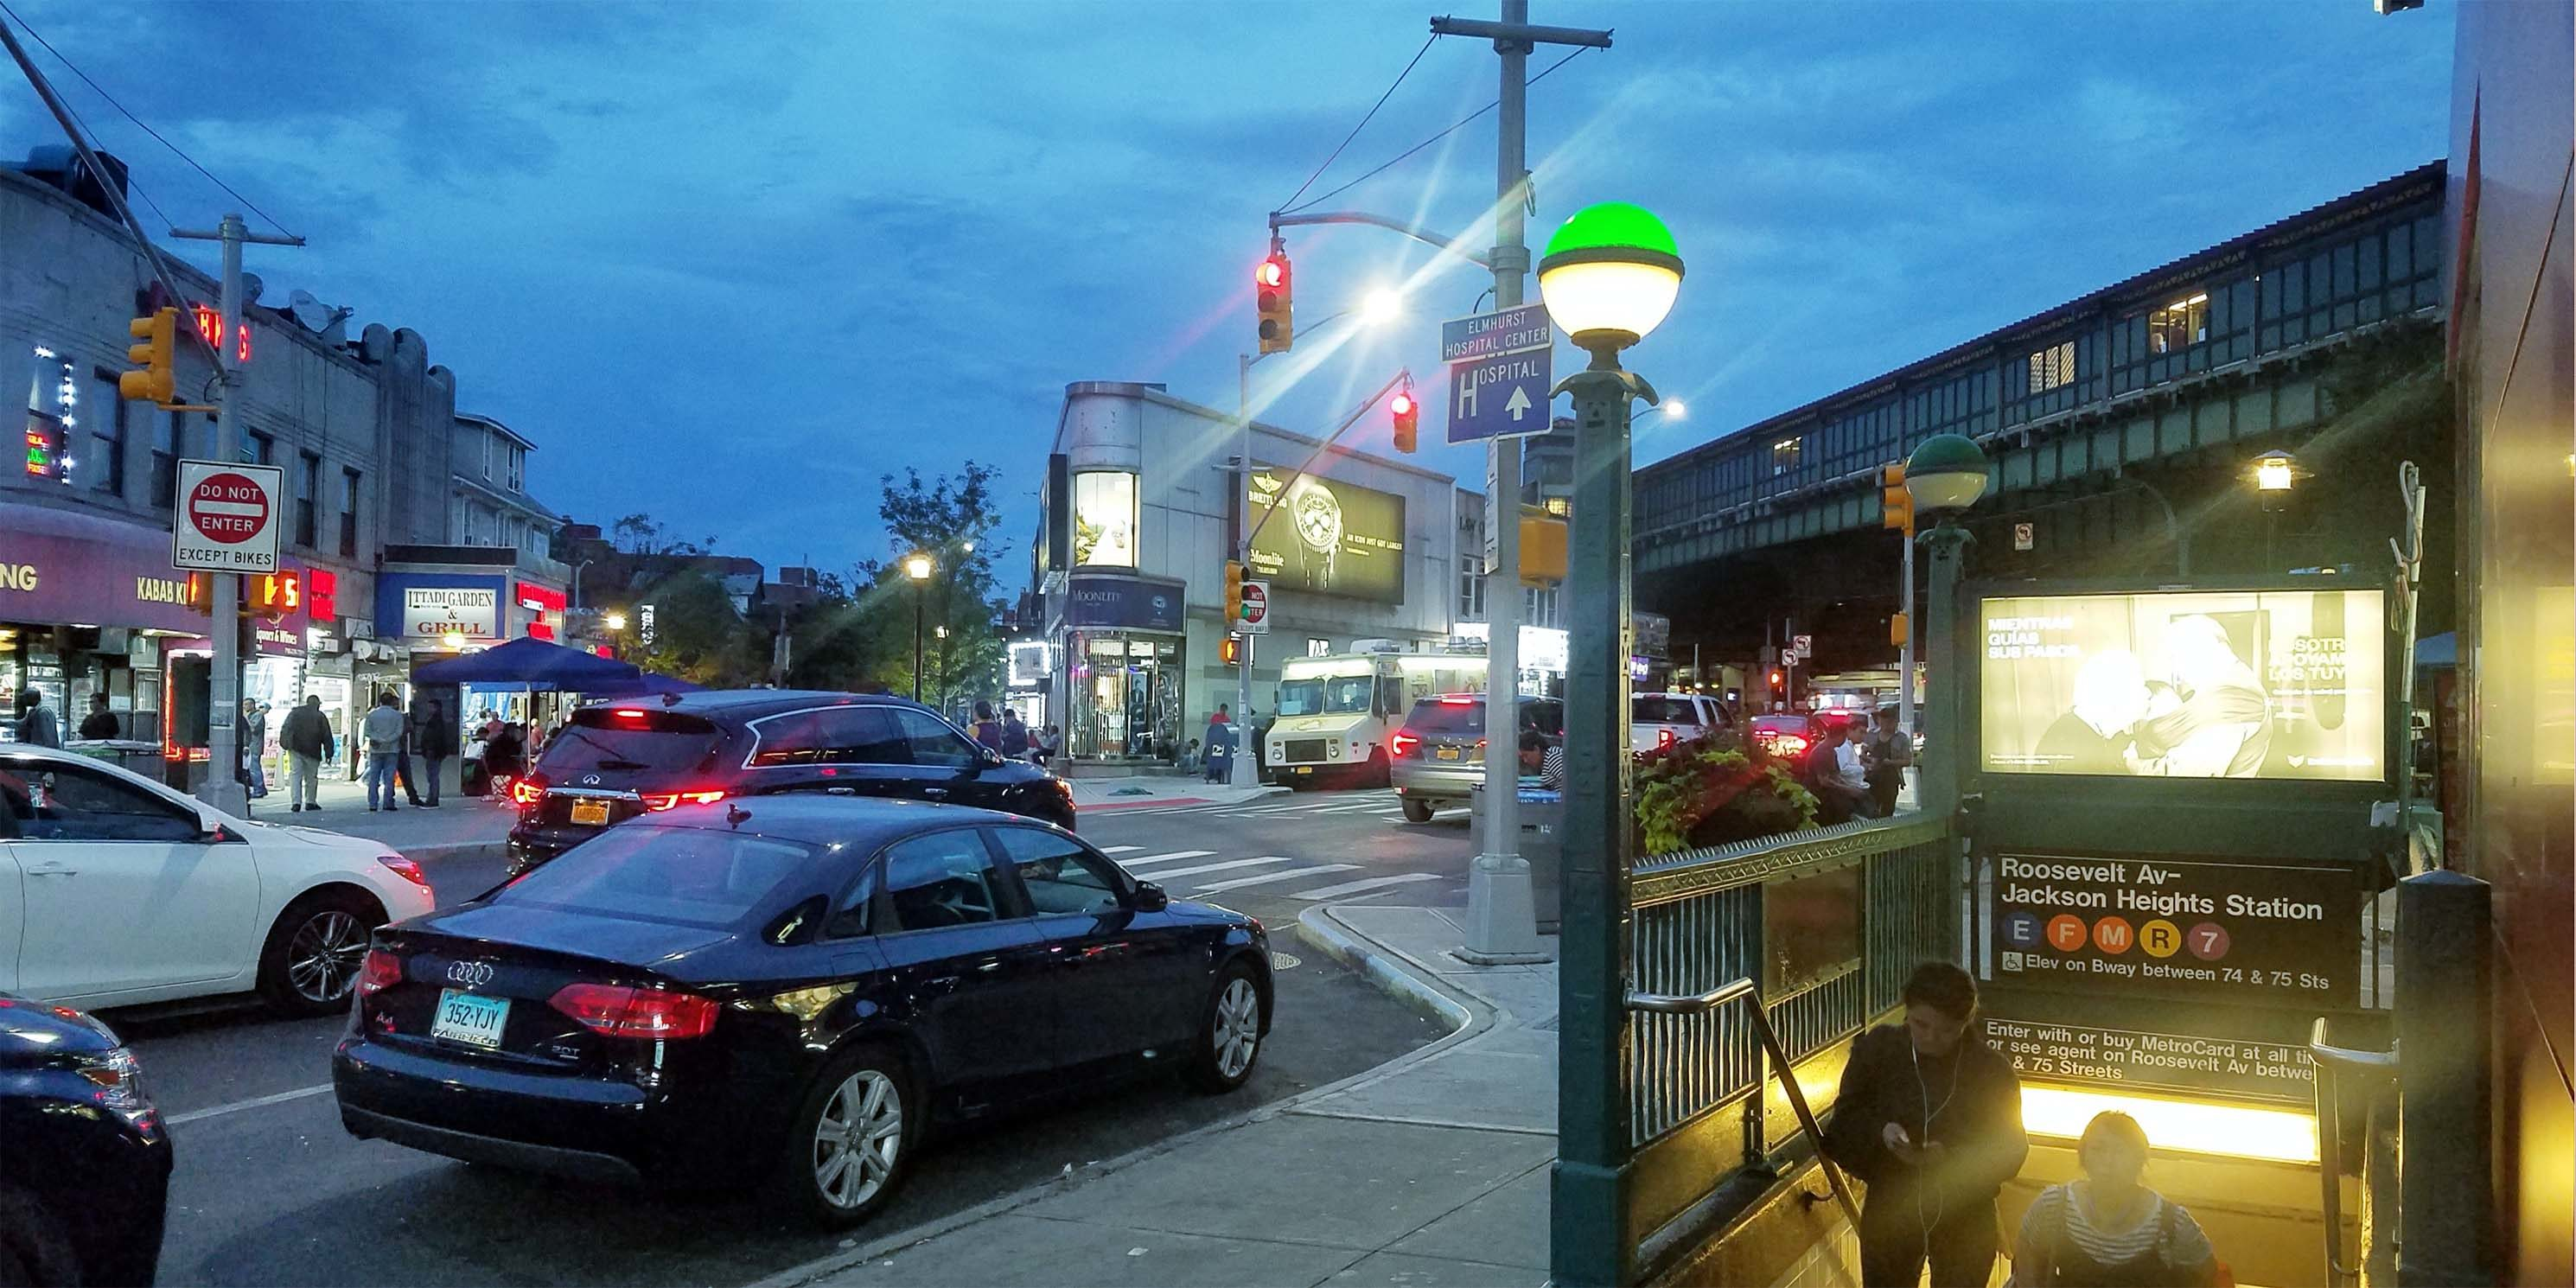 commercial street in Jackson Heights Queens at twilight